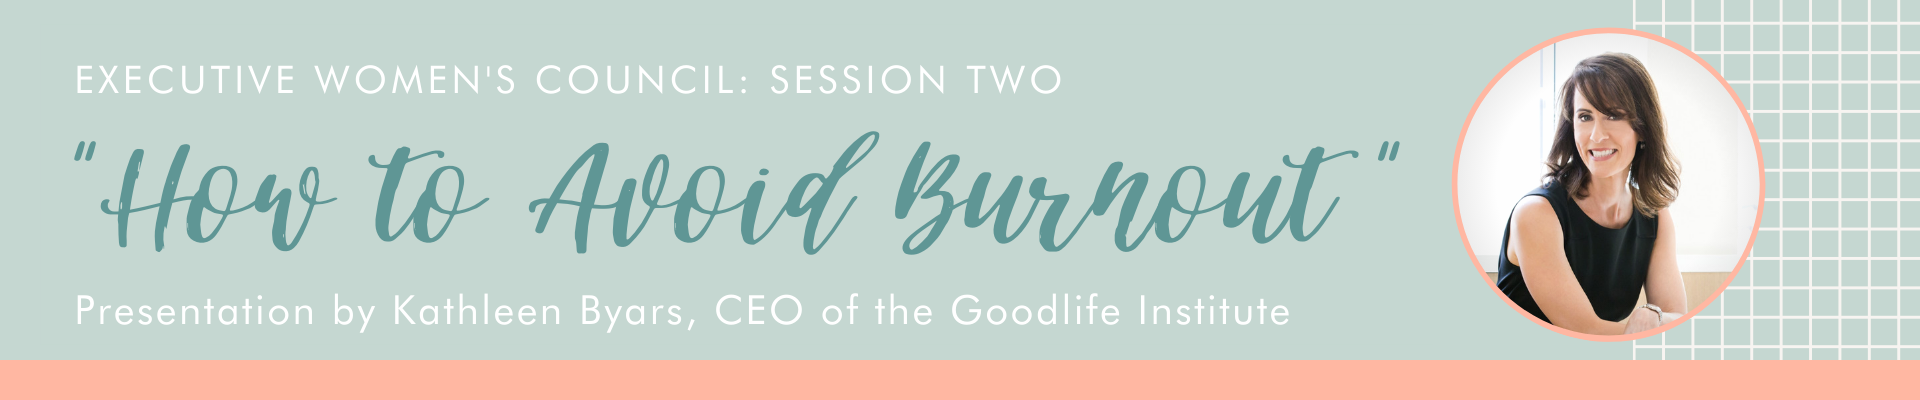 How to Avoid Burnout Women in LEadership Executive Women's Council Session two